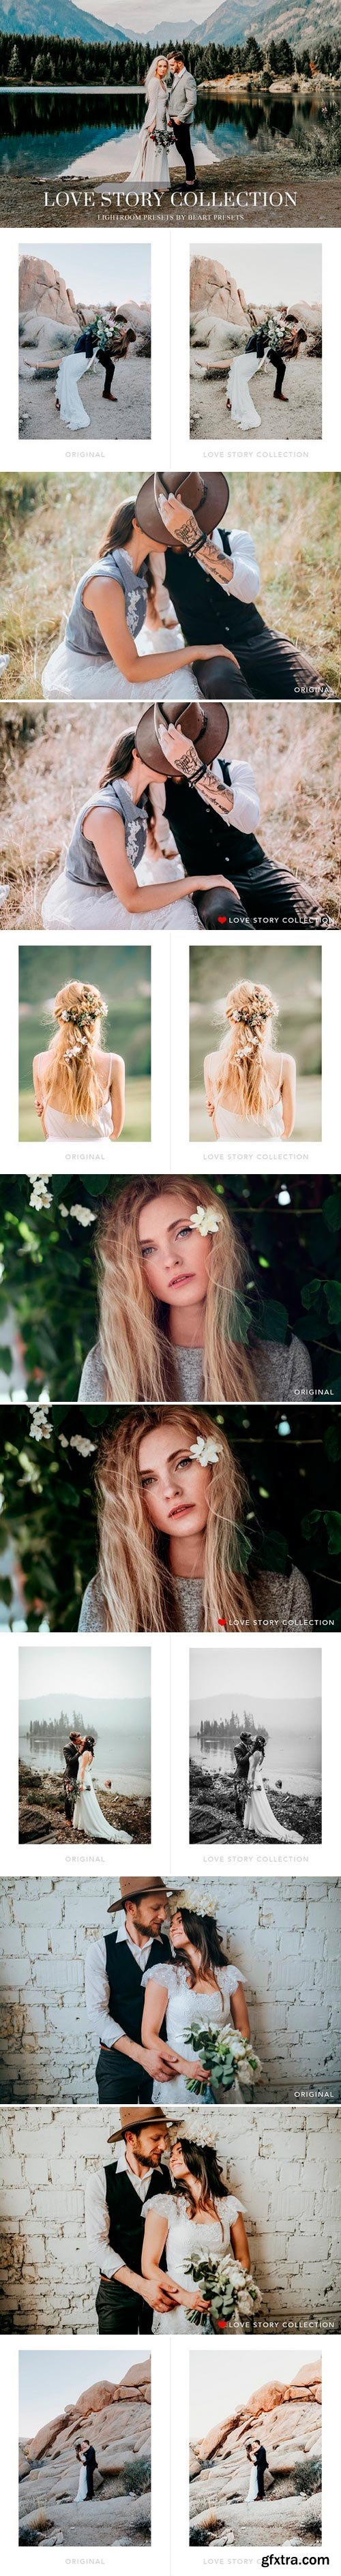 CM - LOVE STORY LIGHTROOM PRESETS 2514677